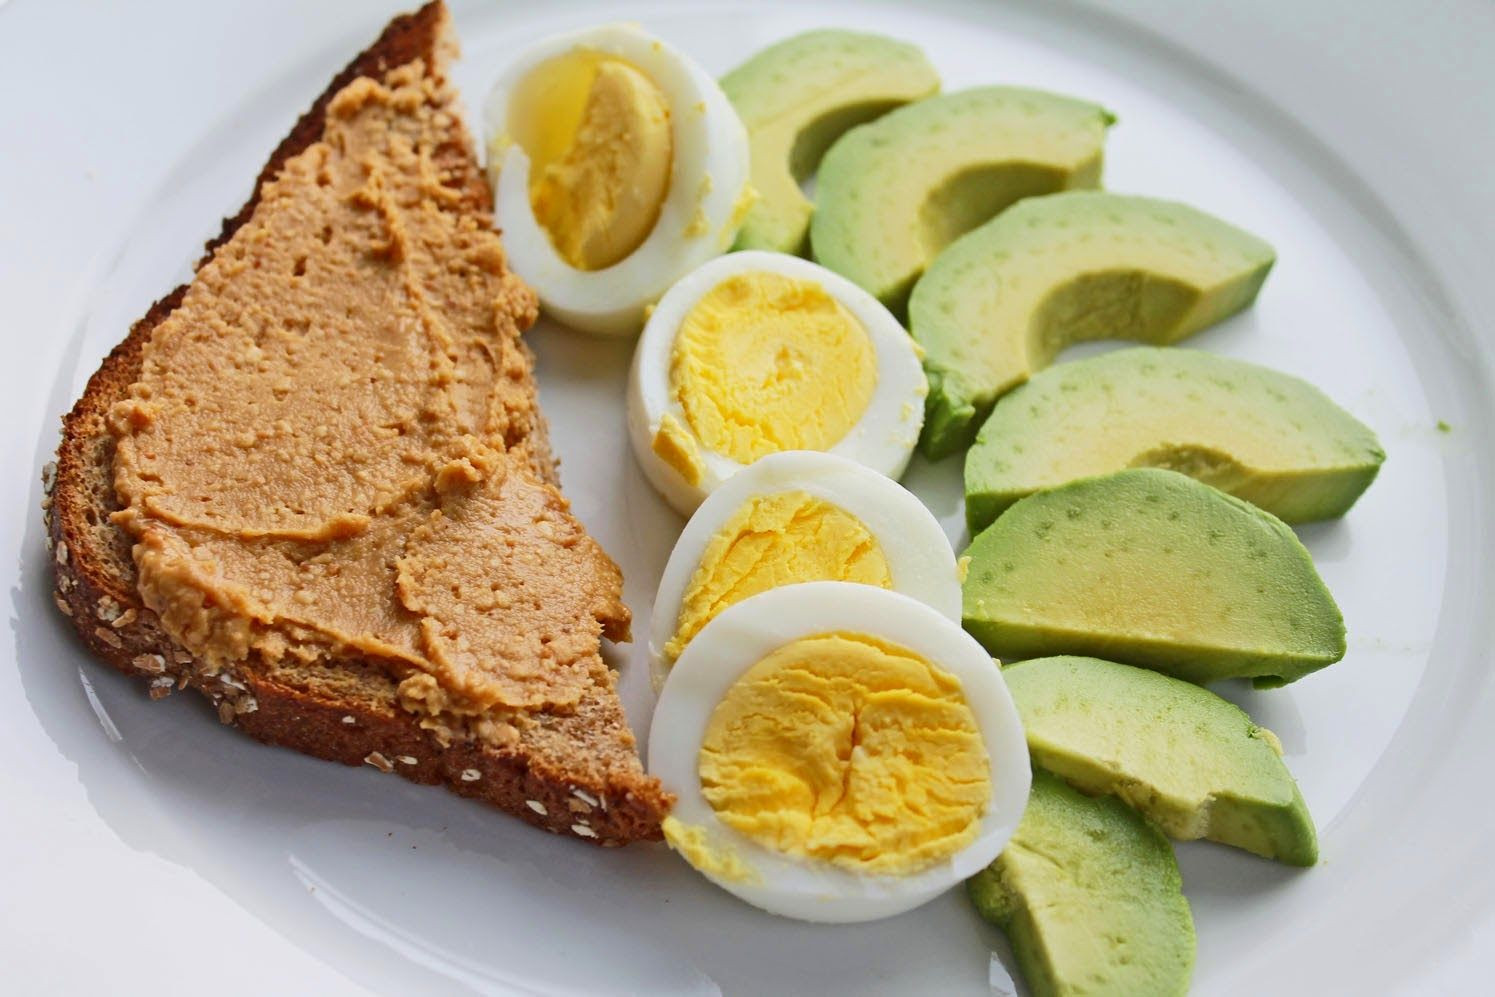 Healthy Egg Breakfast Weight Loss  Healthy breakfast idea Whole Wheat Toast with All Natural